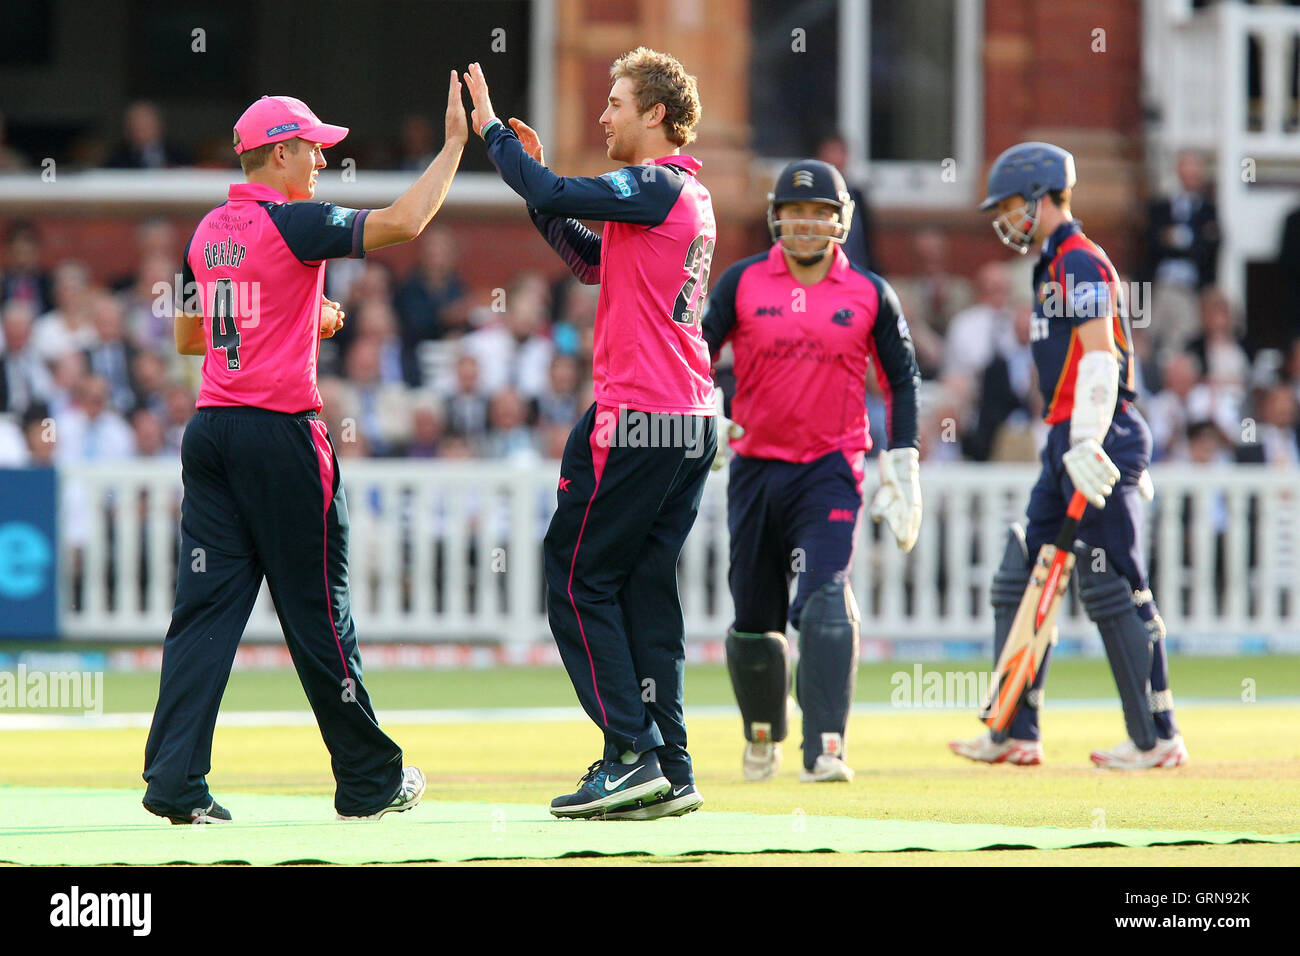 dawid malan c celebrates the wicket of james foster r